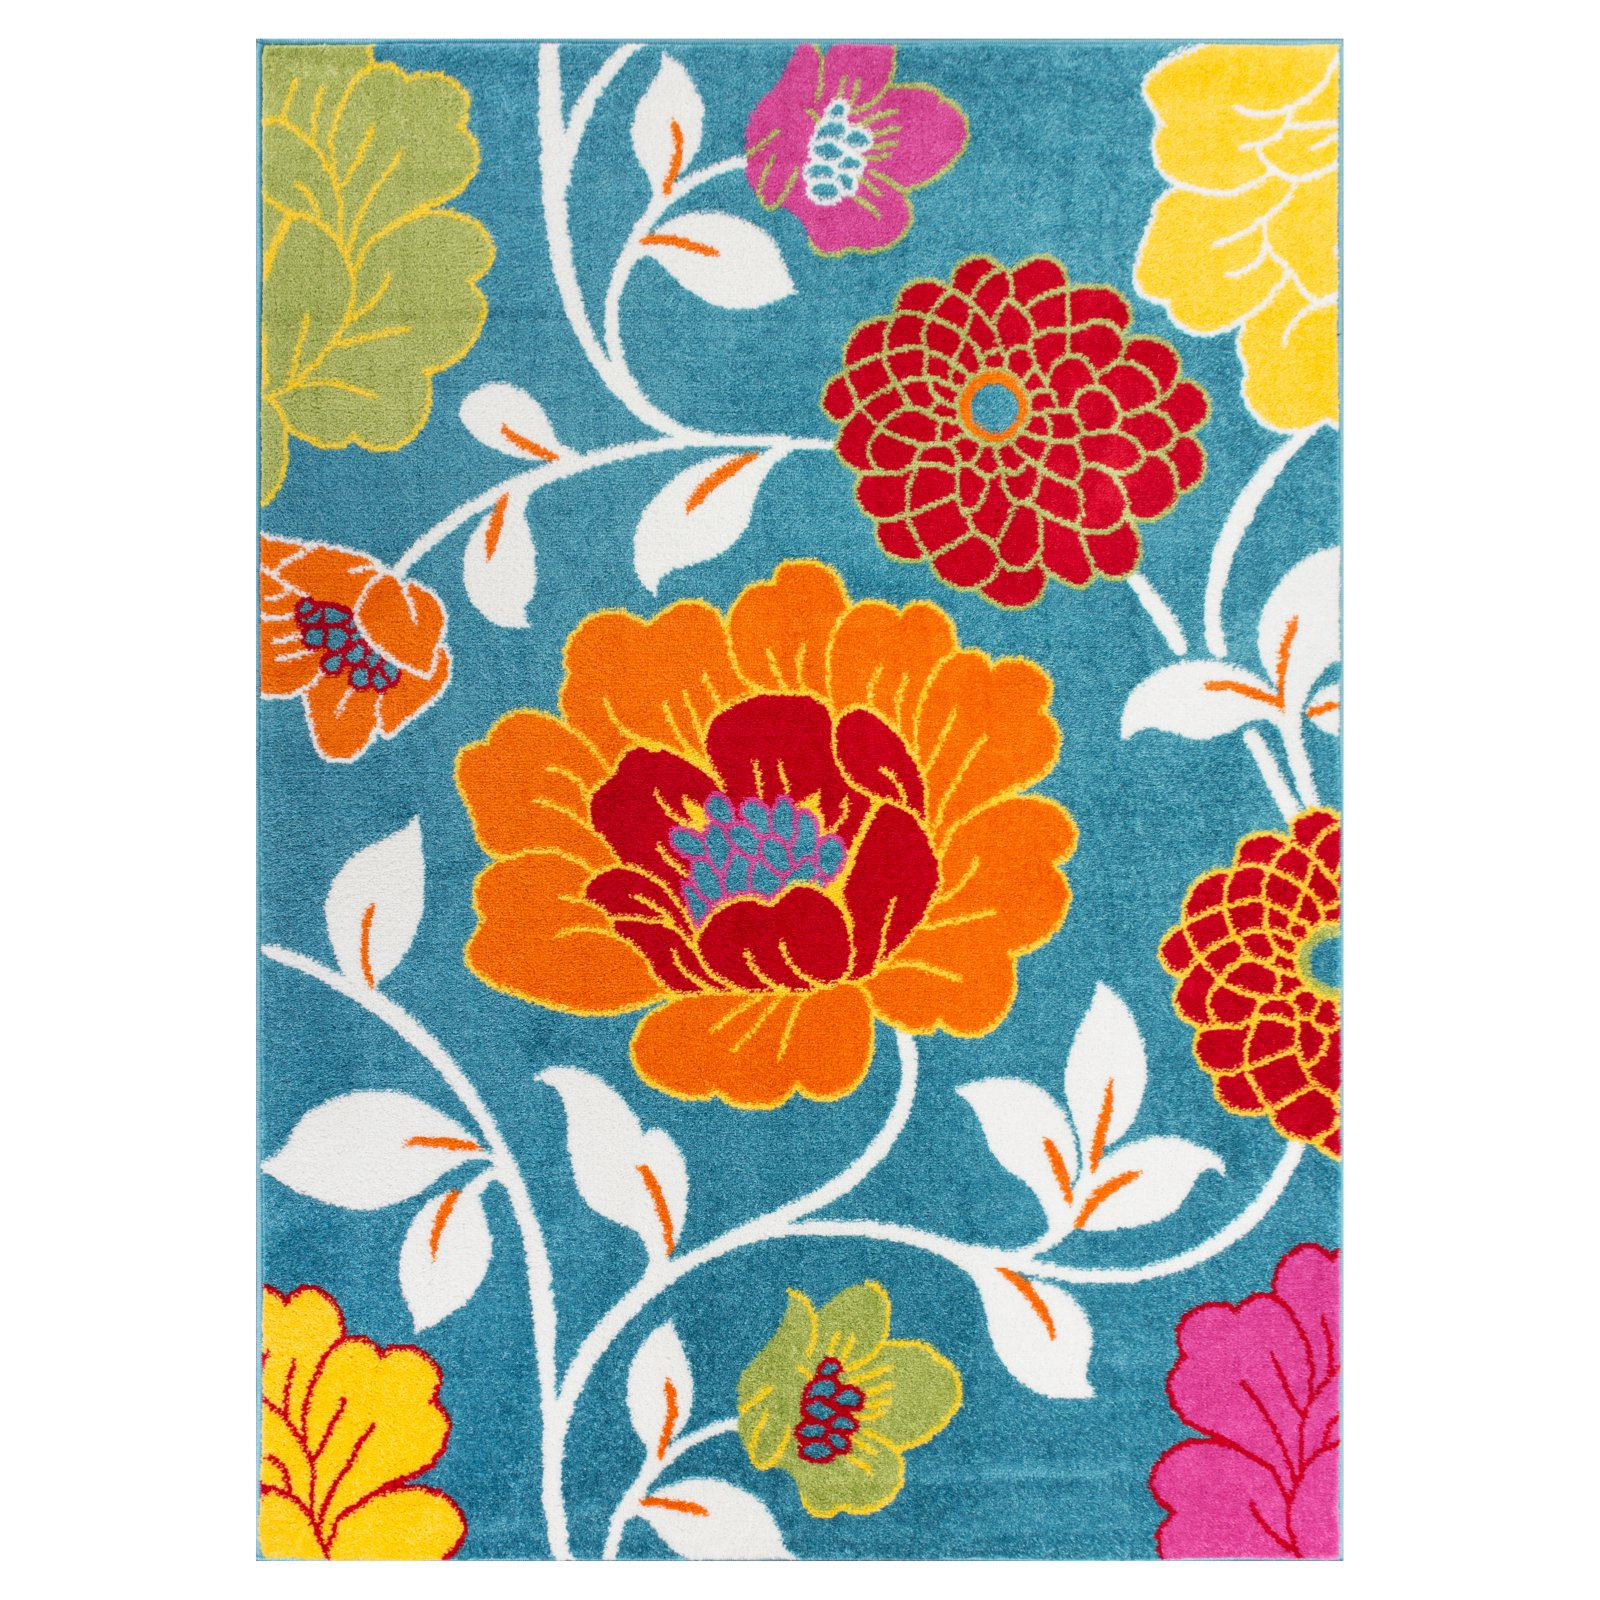 Well Woven StarBright Daisy Flowers Kids Area Rug, Blue by Well Woven